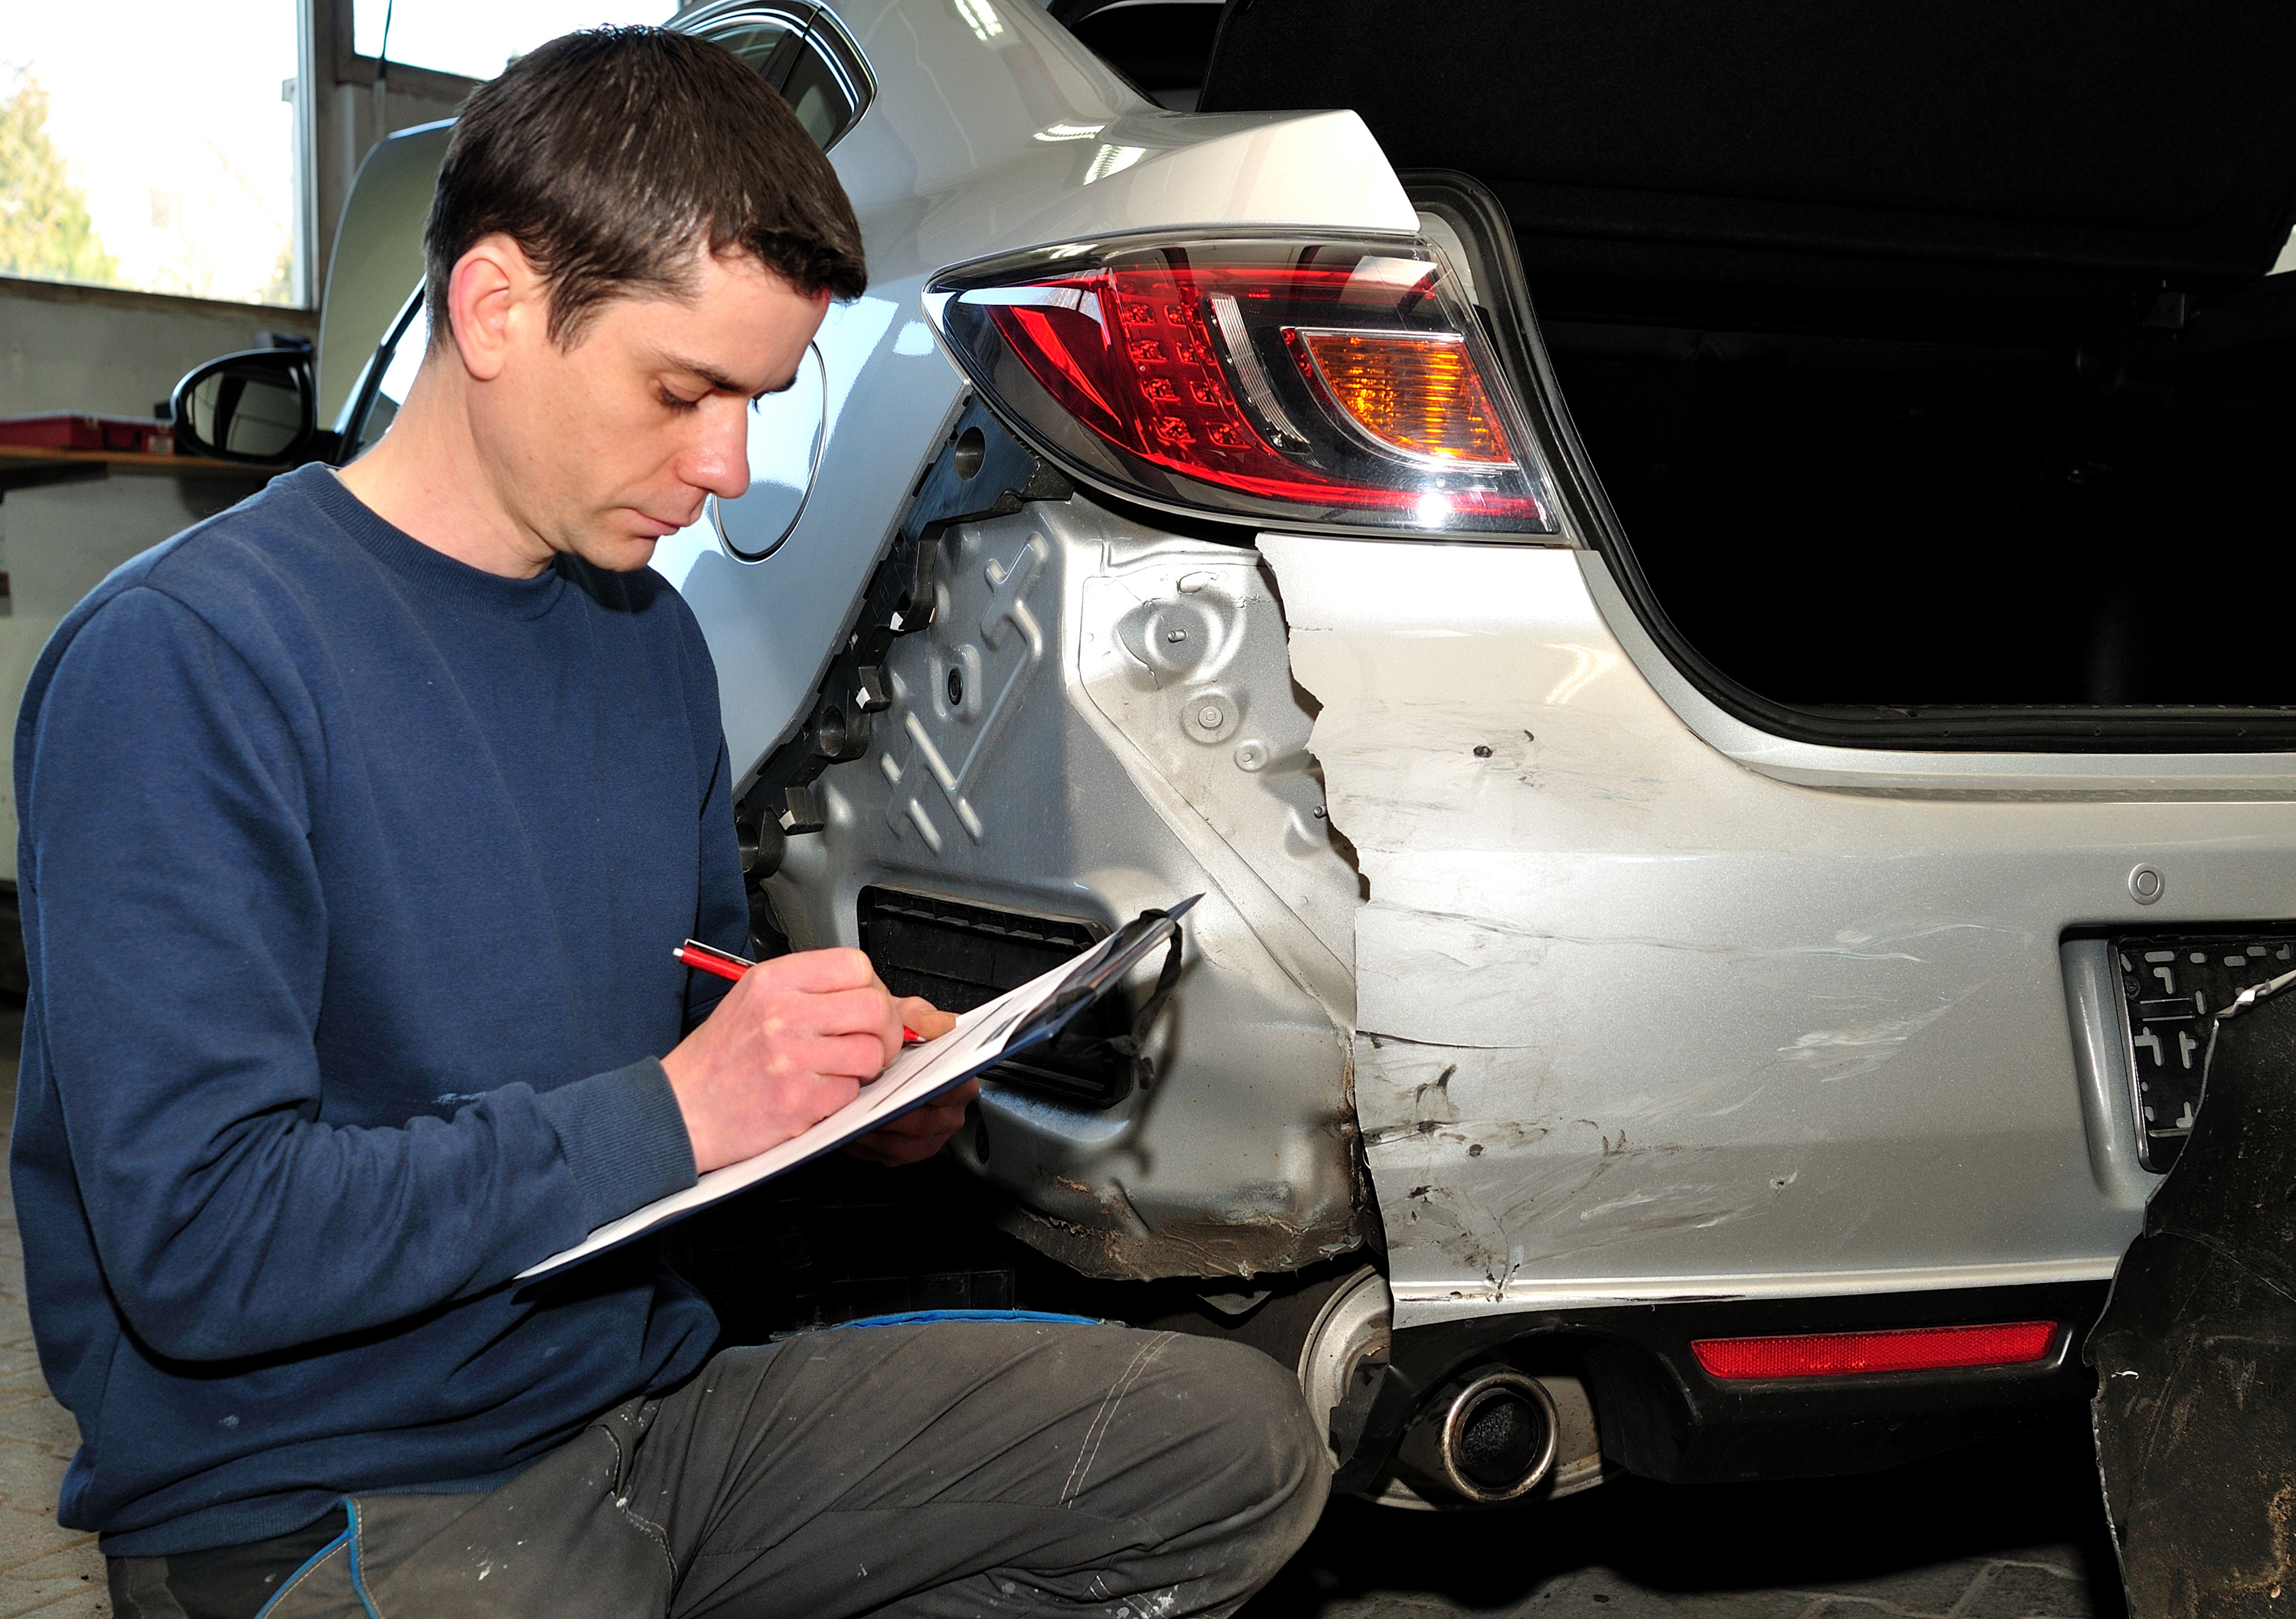 Car repair costs are increasing significantly: what does that mean for your firm?